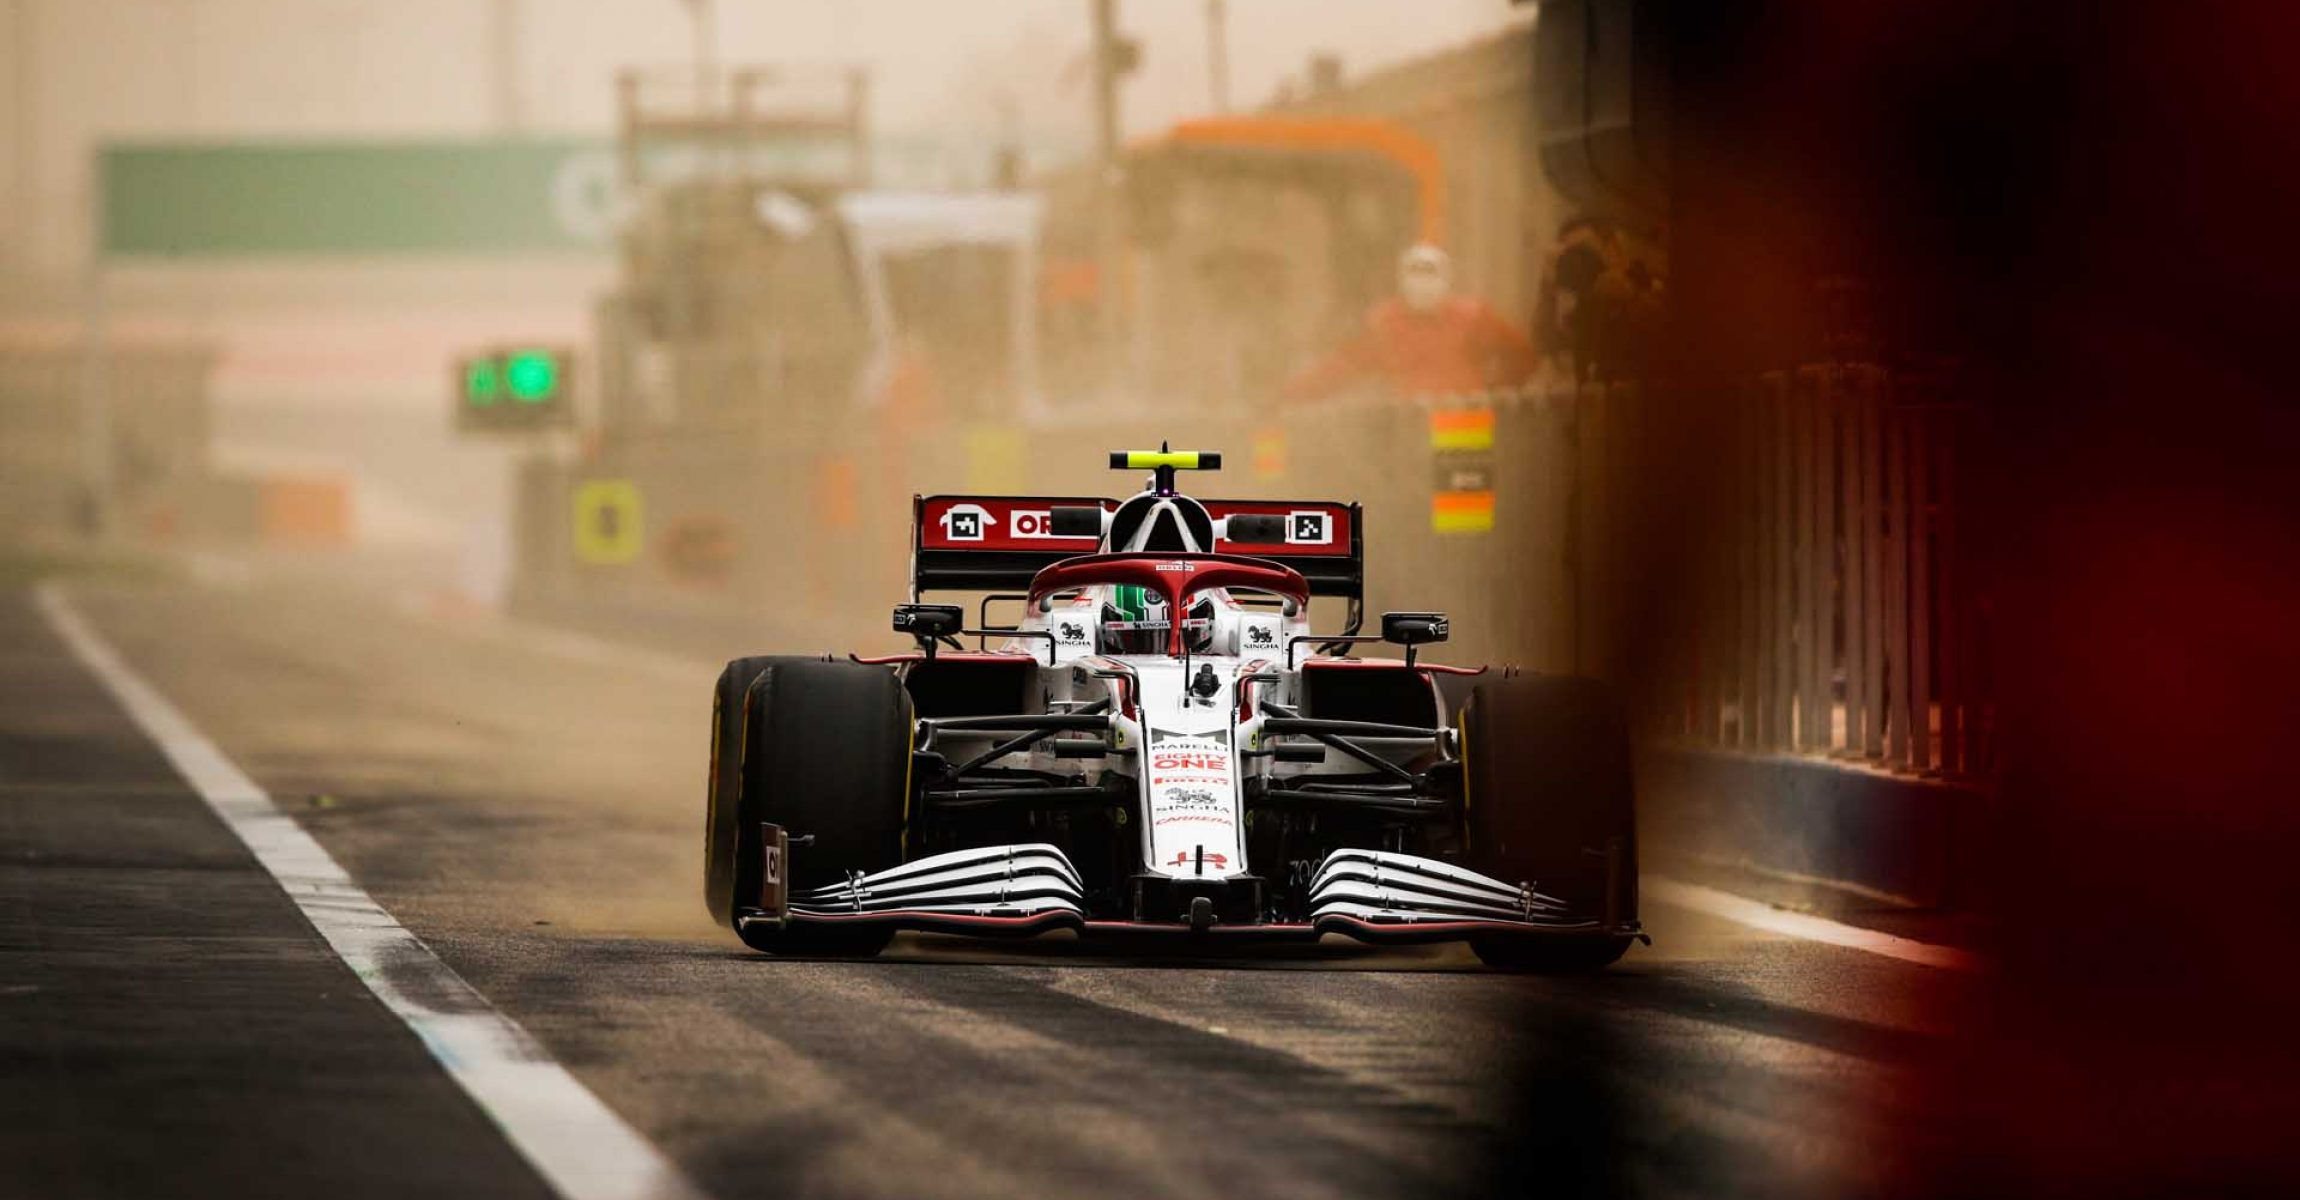 GIOVINAZZI Antonio (ita), Alfa Romeo Racing ORLEN C41, action during the Formula 1 Pre-season testing 2020 from March 12 to 14, 2021 on the Bahrain International Circuit, in Sakhir, Bahrain - Photo Florent Gooden / DPPI